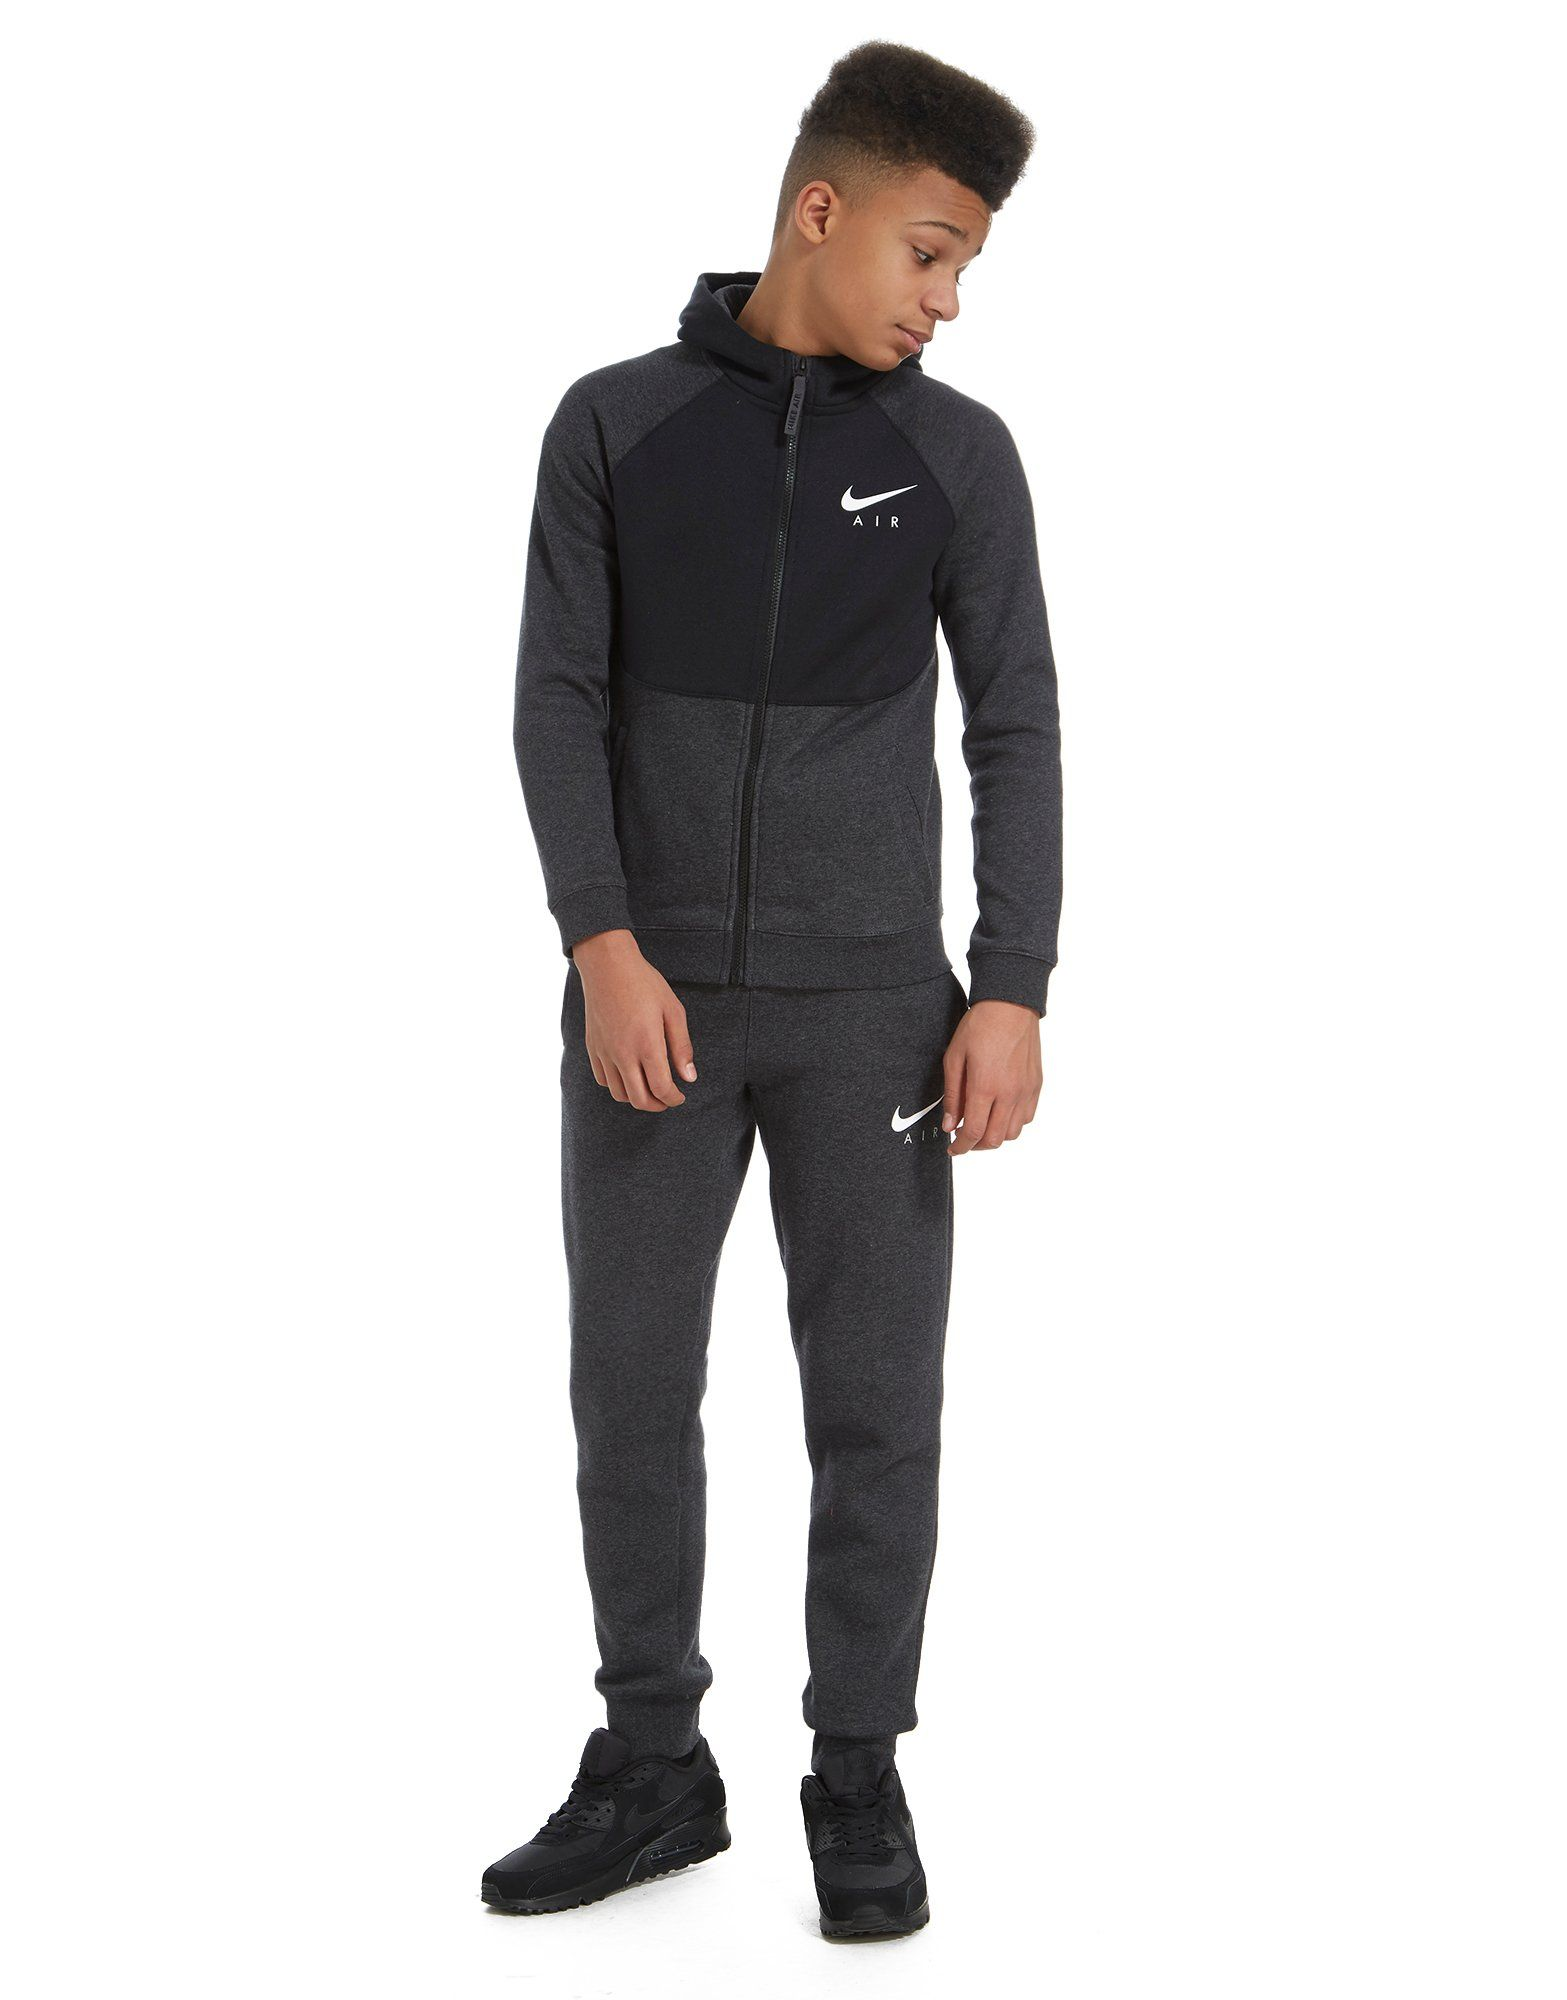 Sports Clothing Stores Online Uk